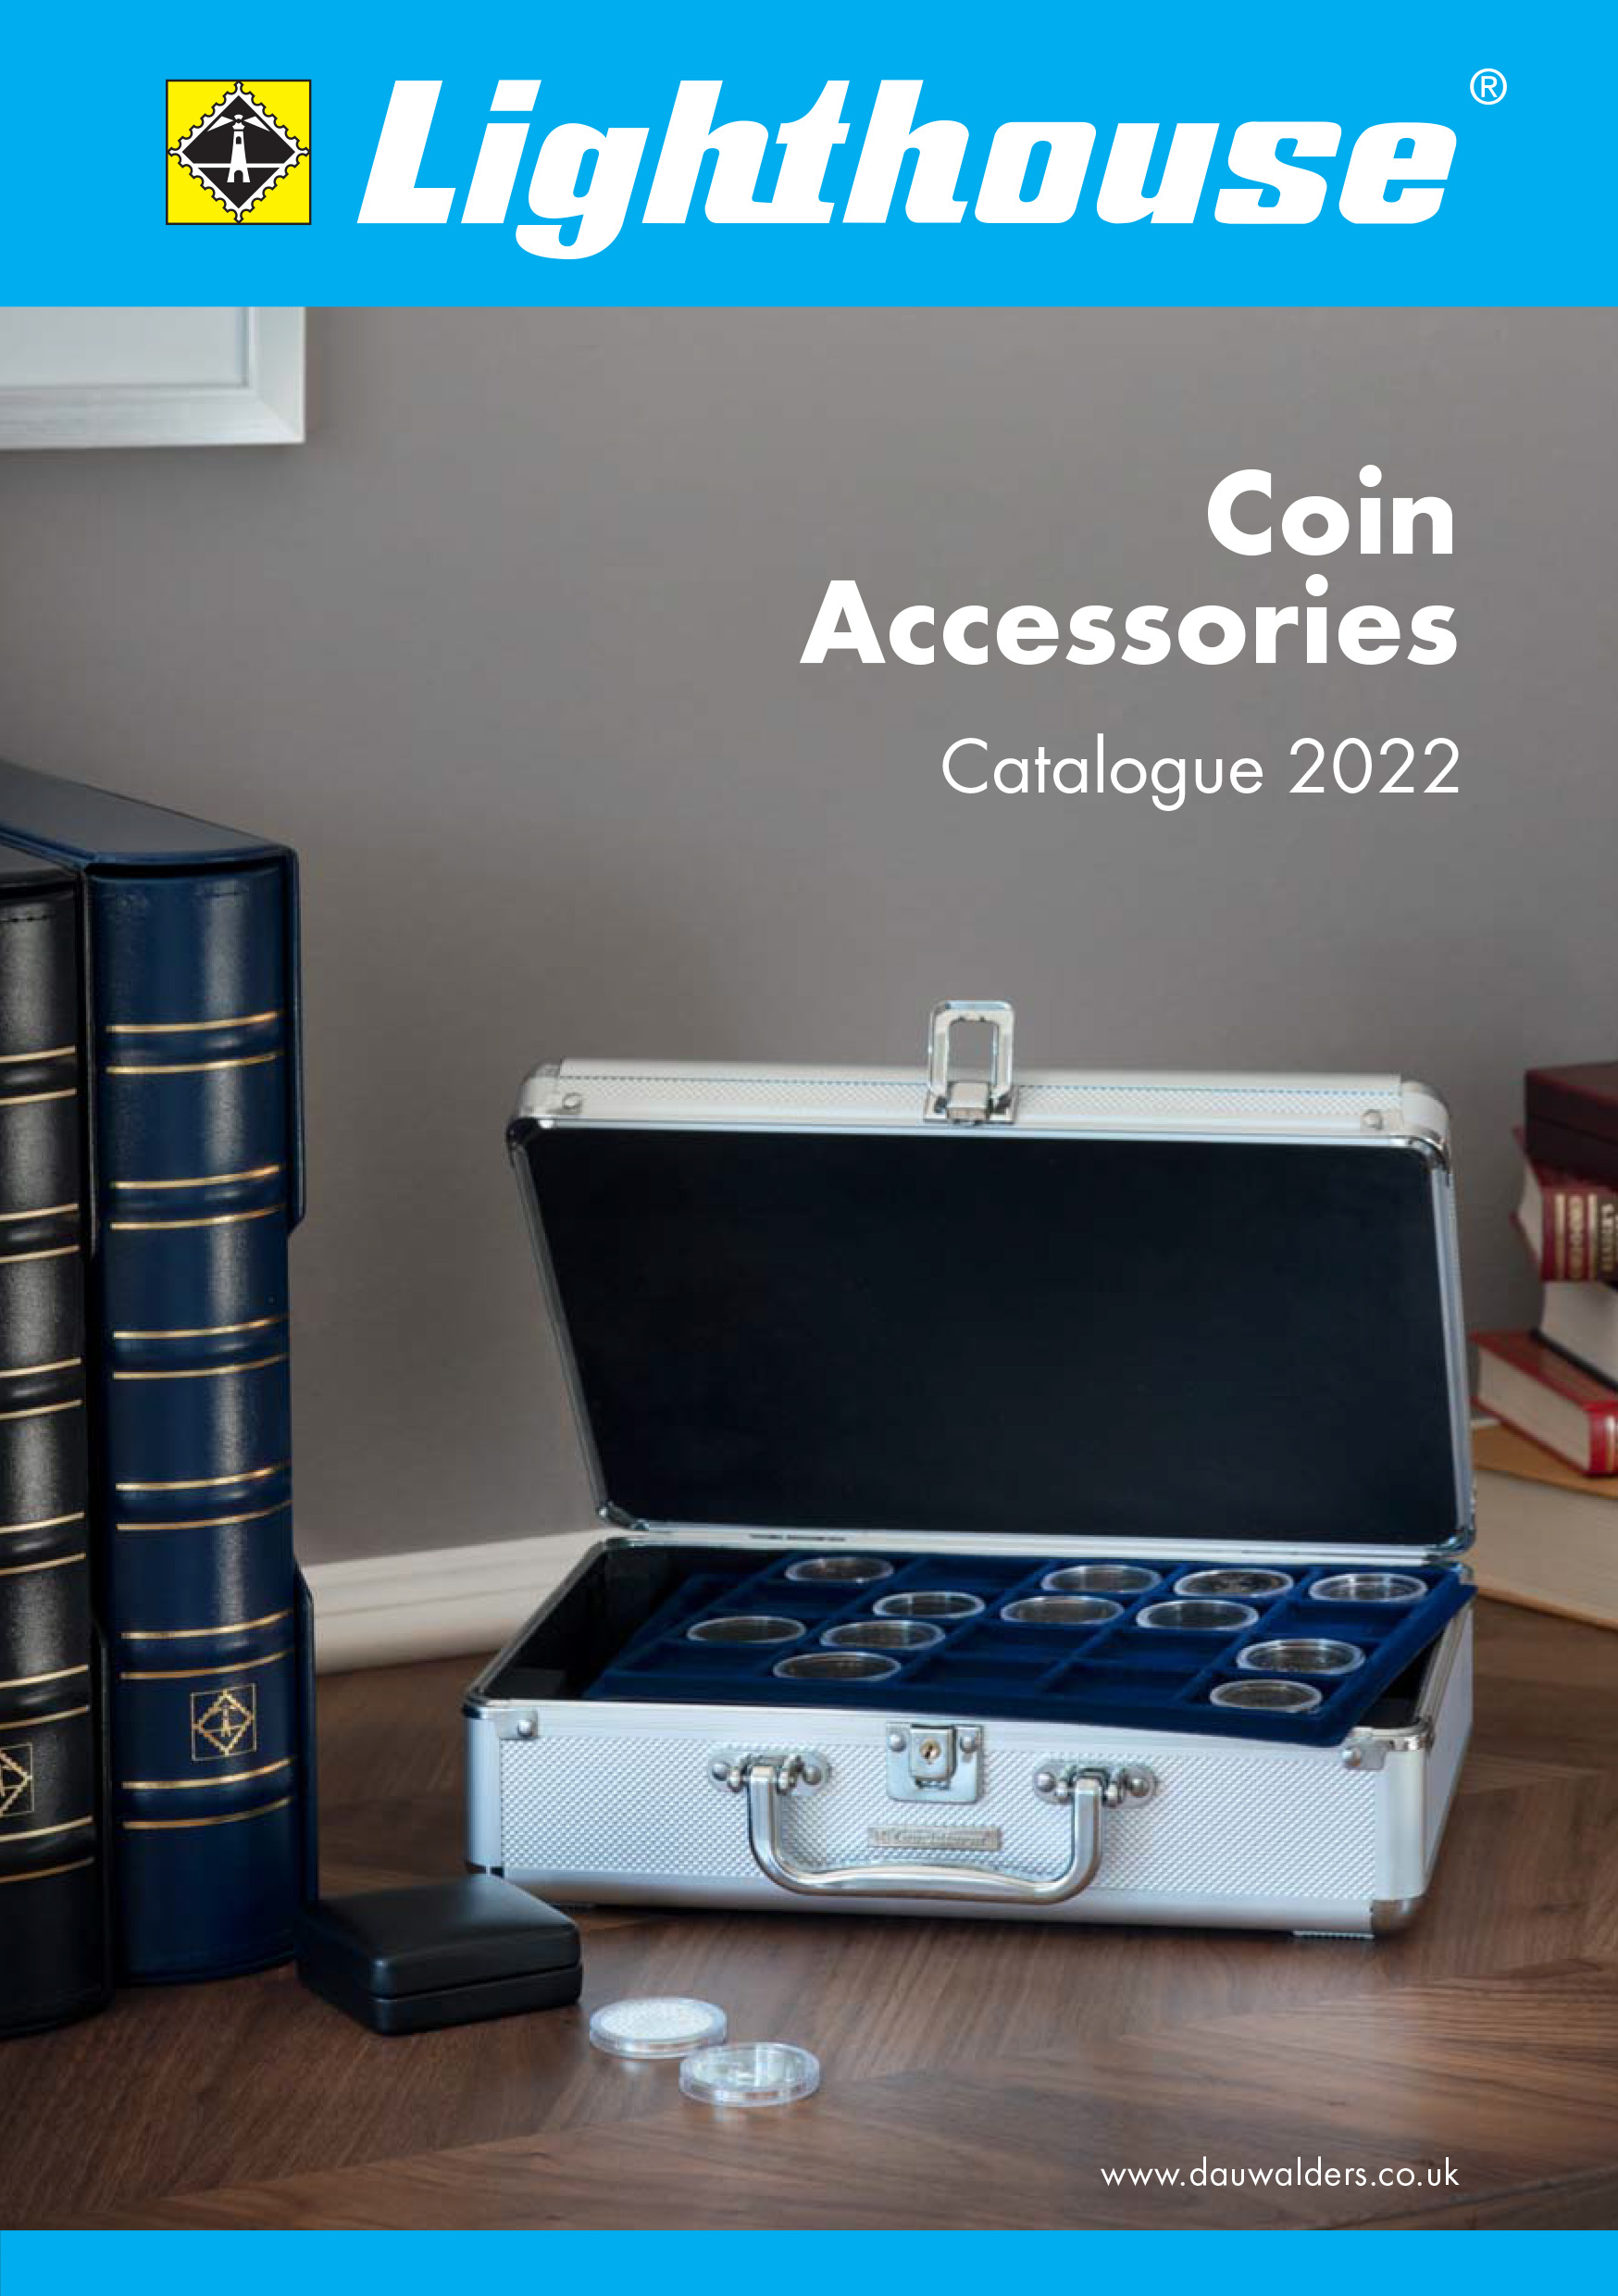 Lighthouse Coin Accessories